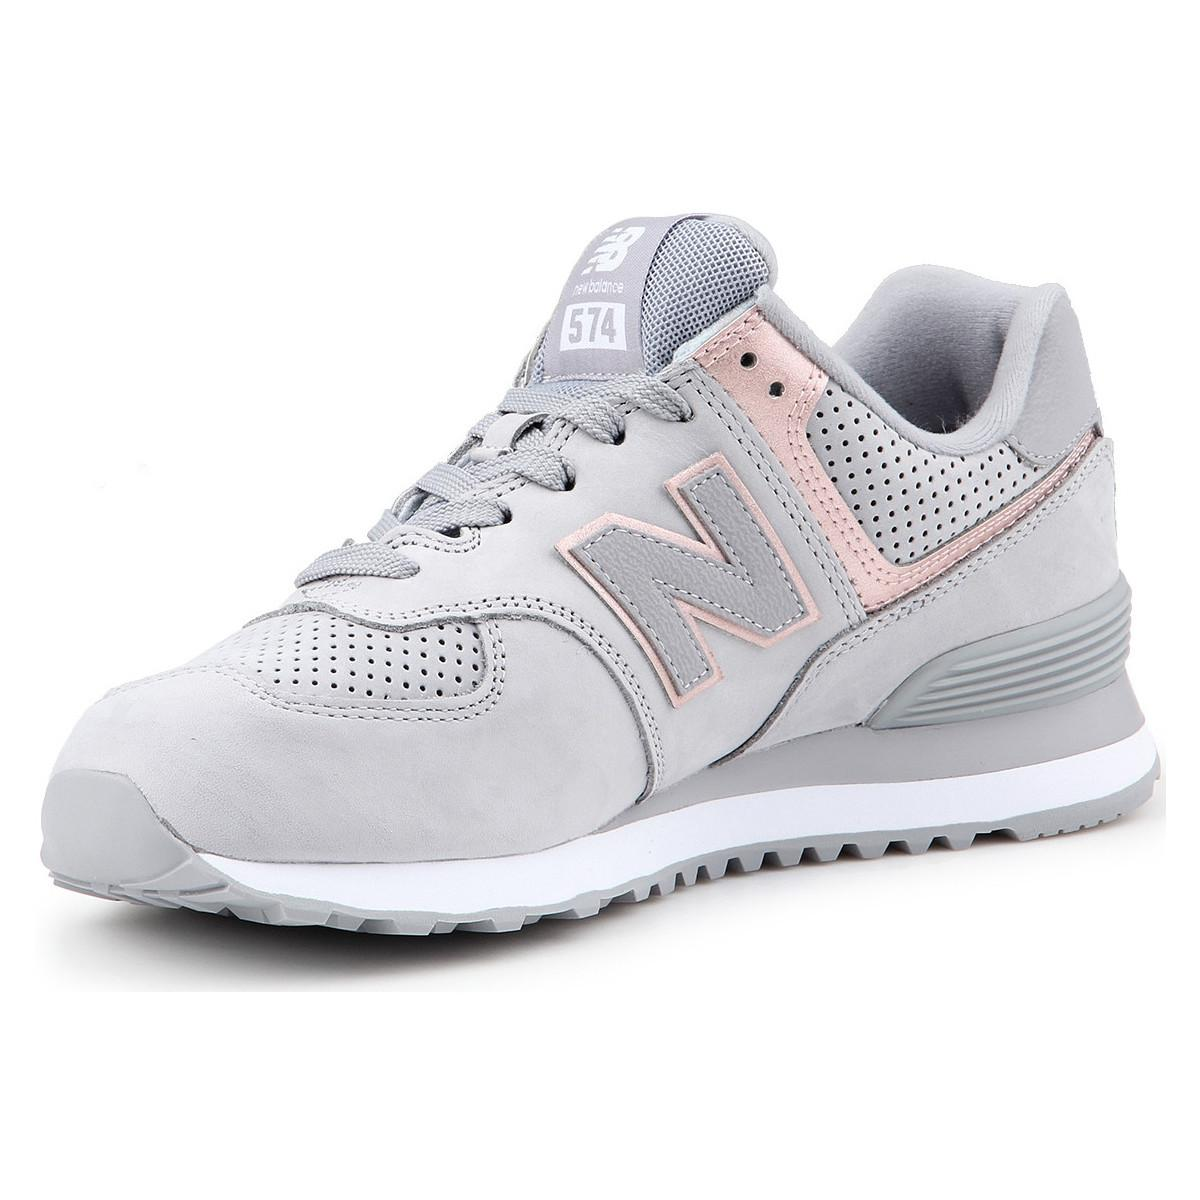 check out f17c9 e9d13 New Balance Leather Wl574nbn Women's Shoes (trainers) In ...